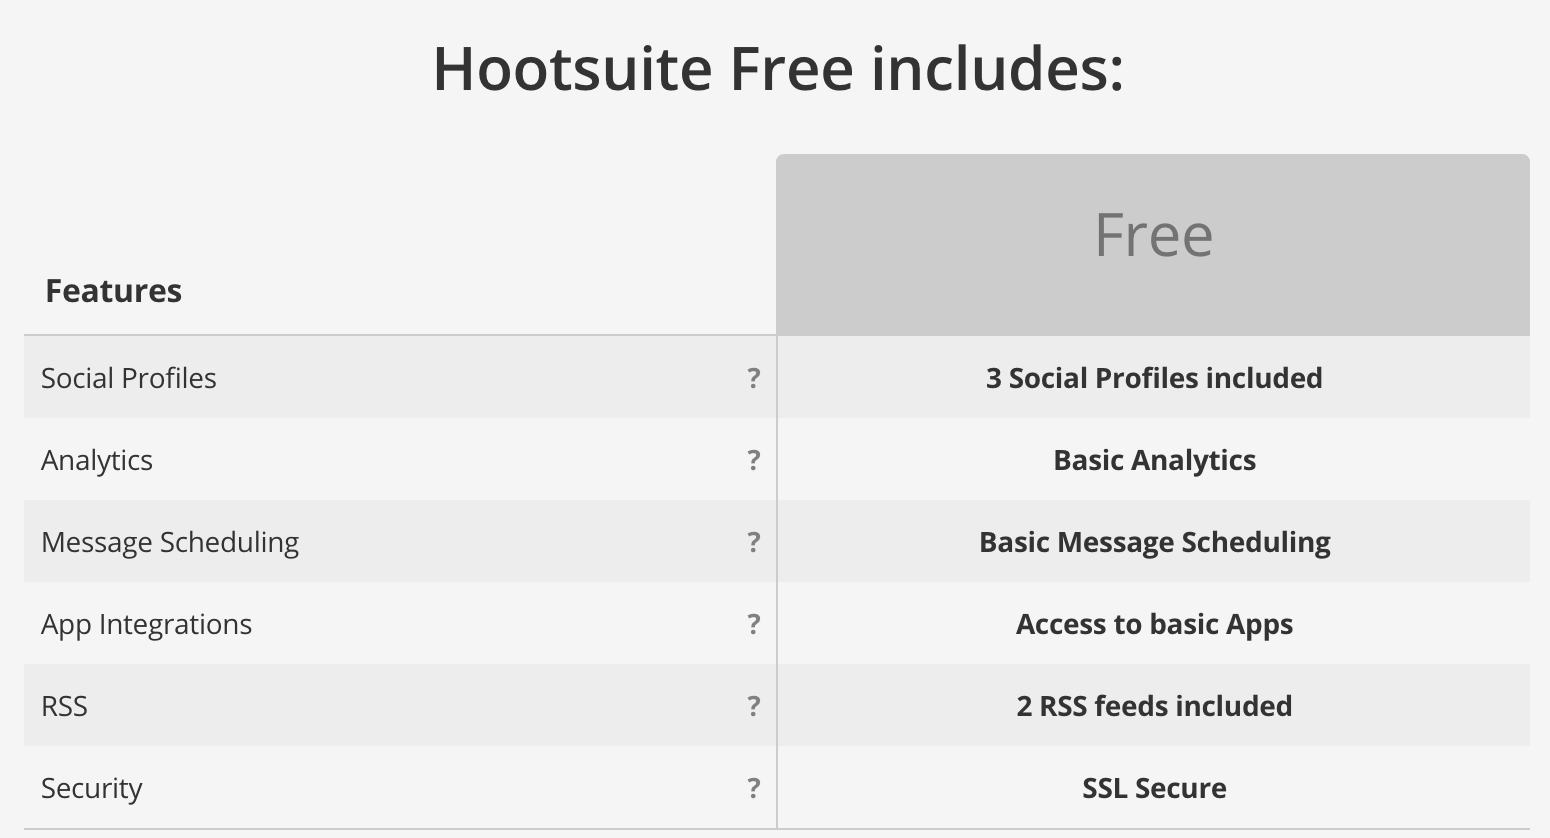 Hootsuite Free includes these benefits - crunchify